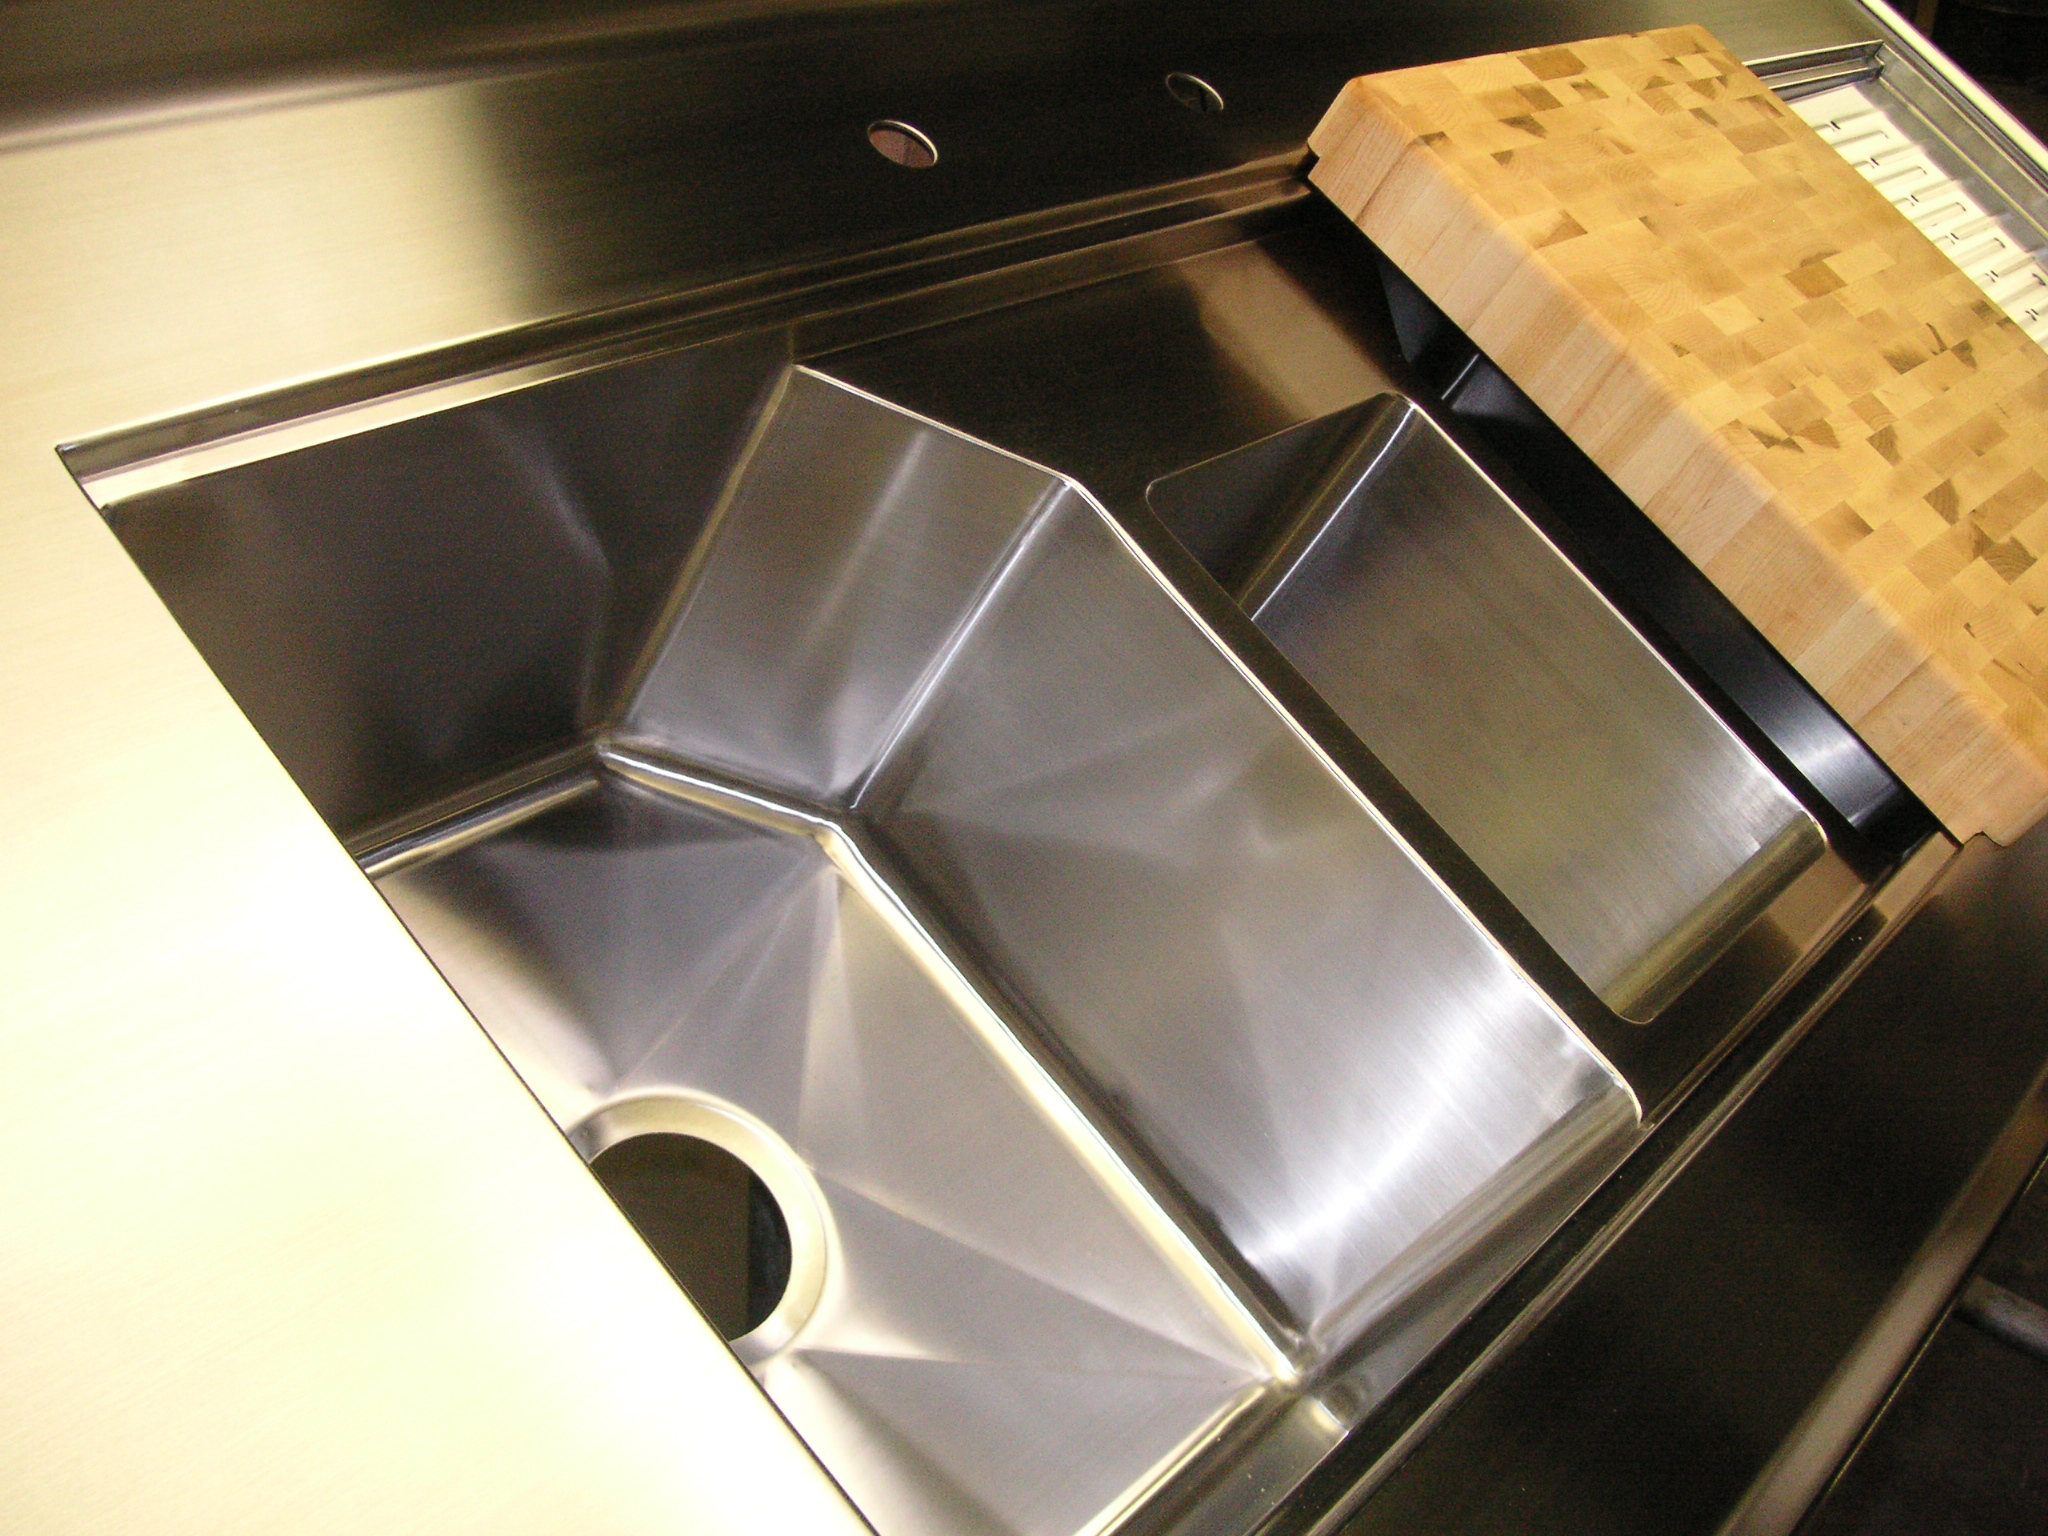 Berlin custom 3 compartment sink